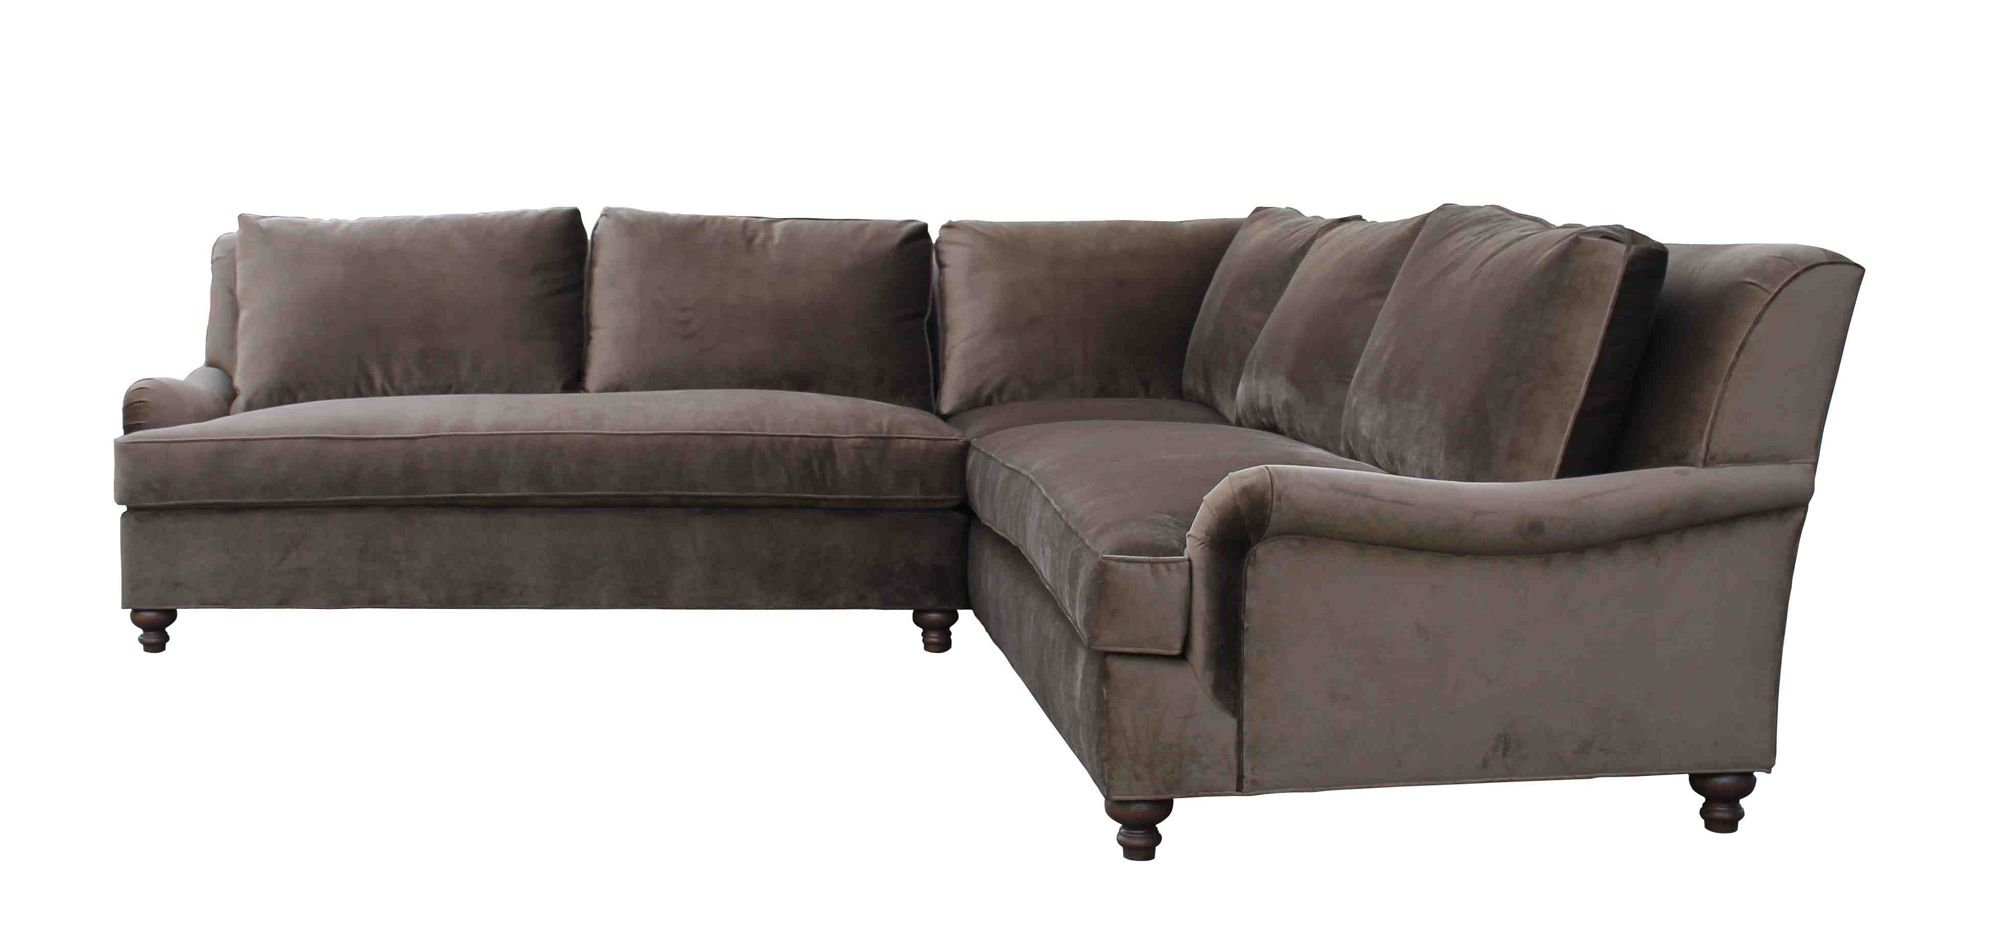 Los Sofas English Rolled Arm Sectional For Our Apartment Custom Sofa